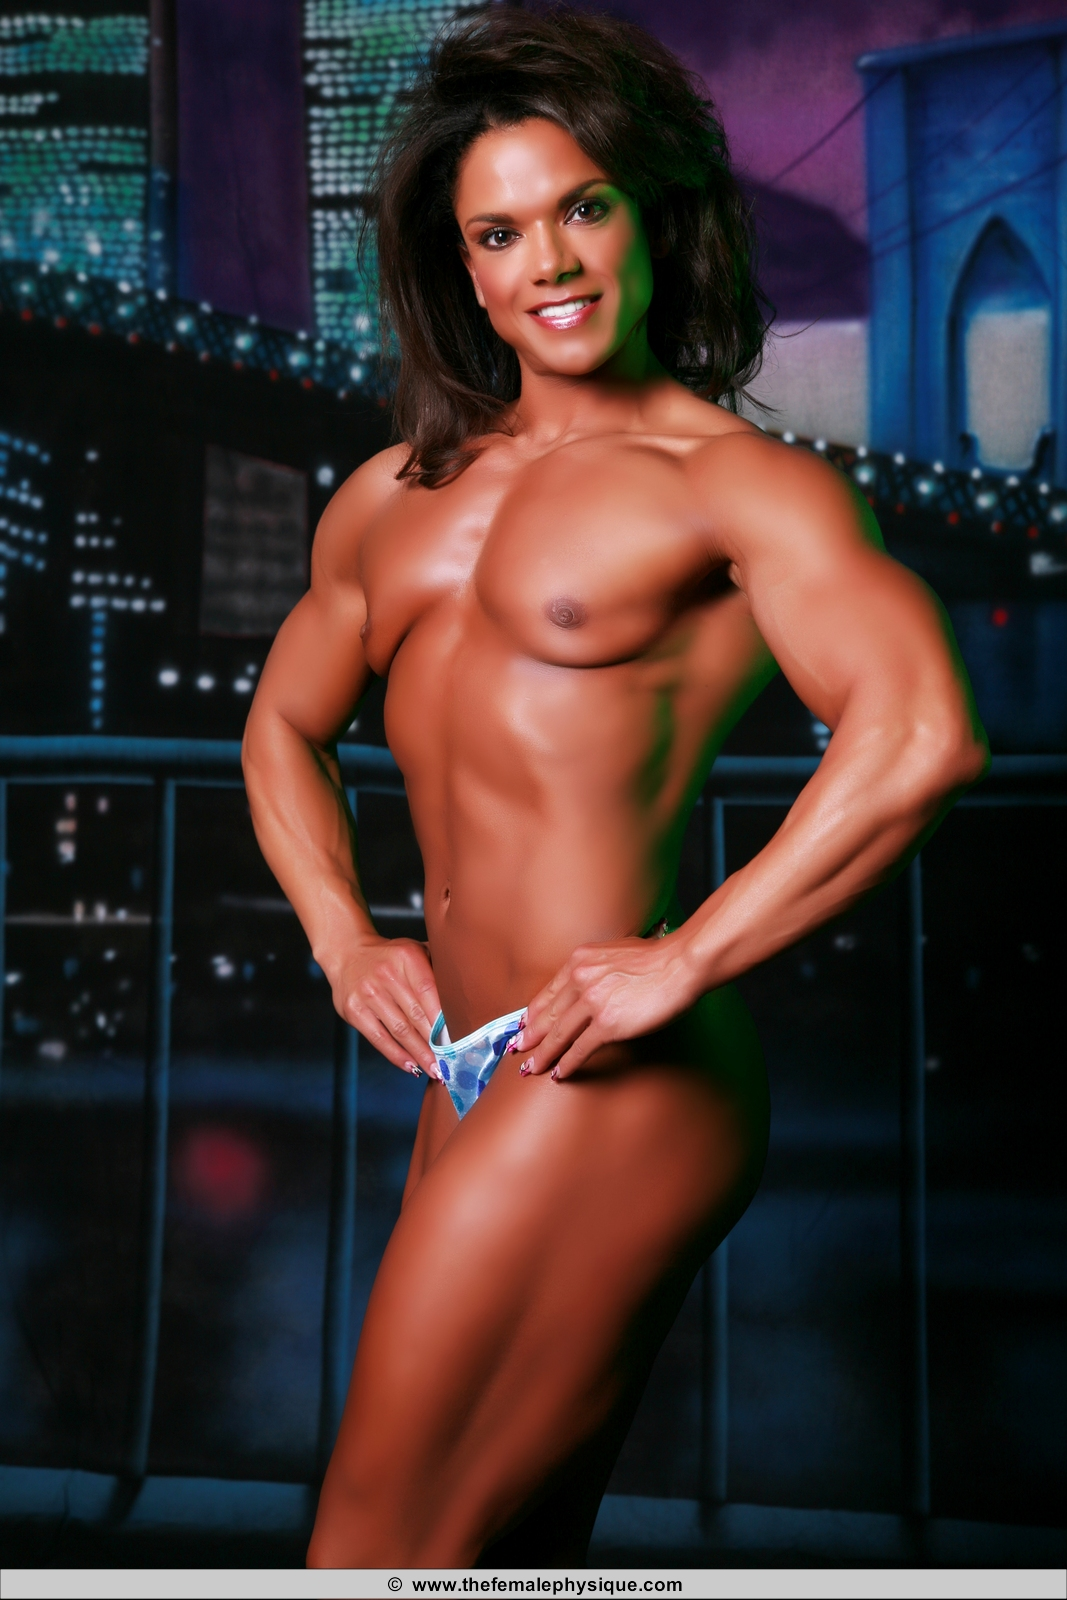 Bodybuilder woman hentai porn photo